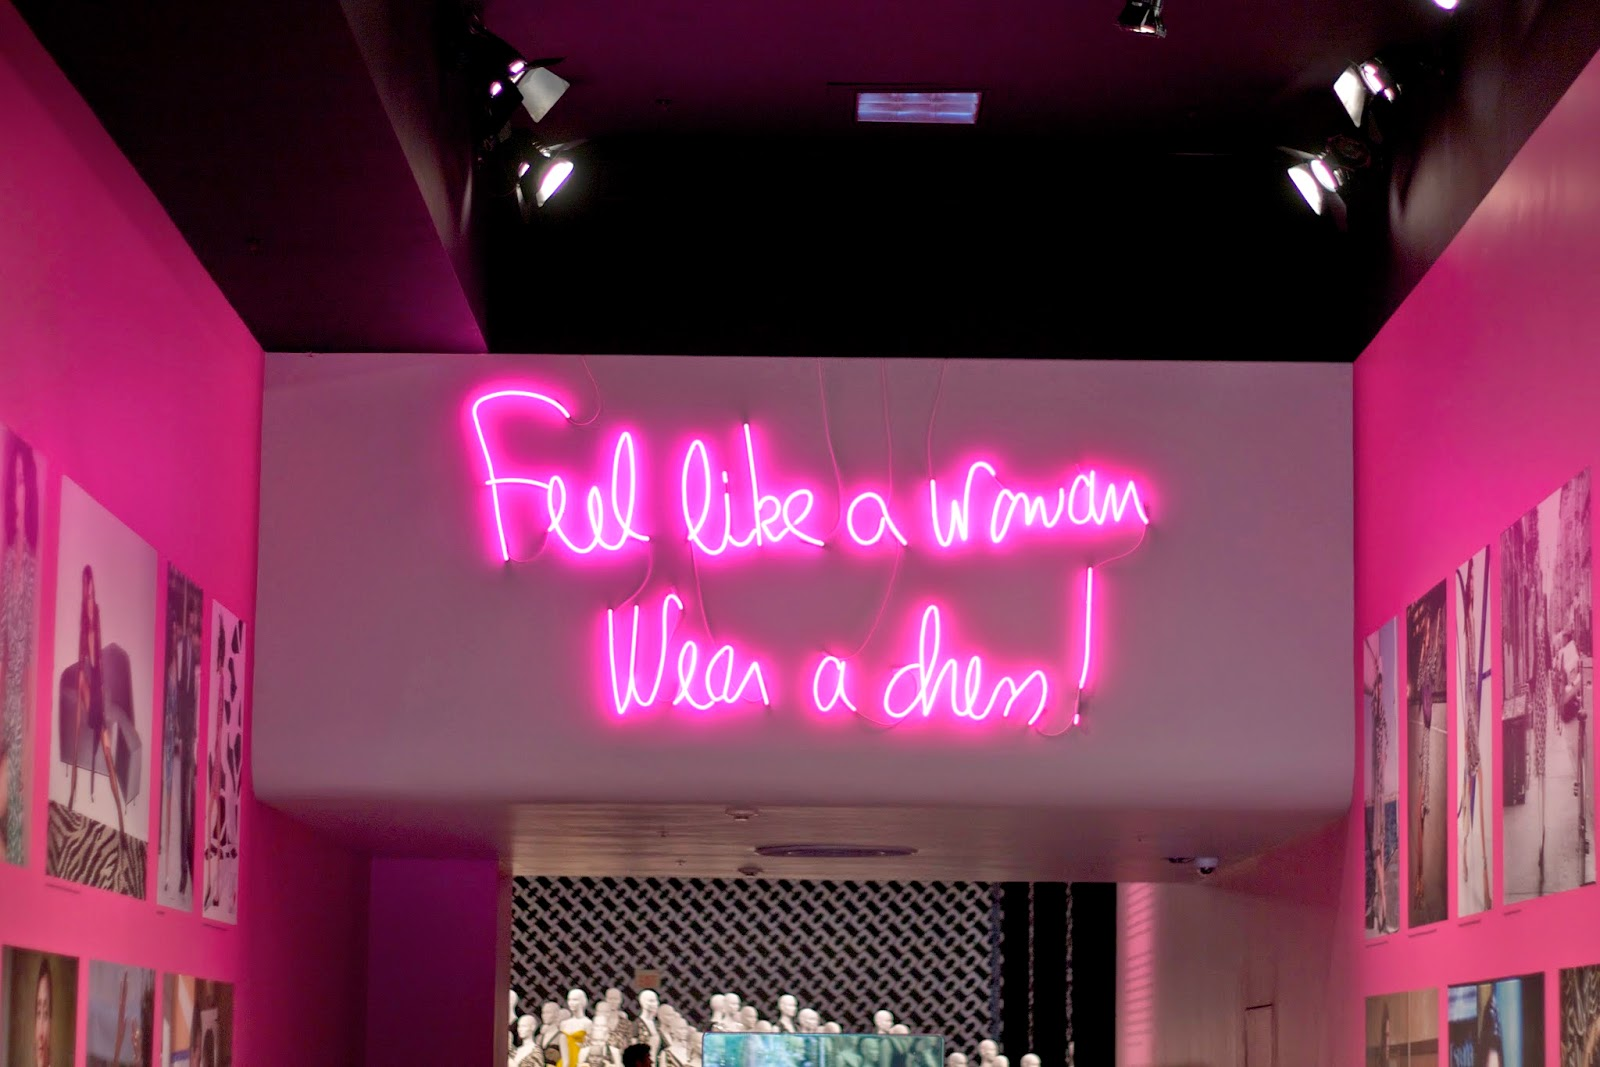 feel like a woman wear a dress, dvf quote on the wall